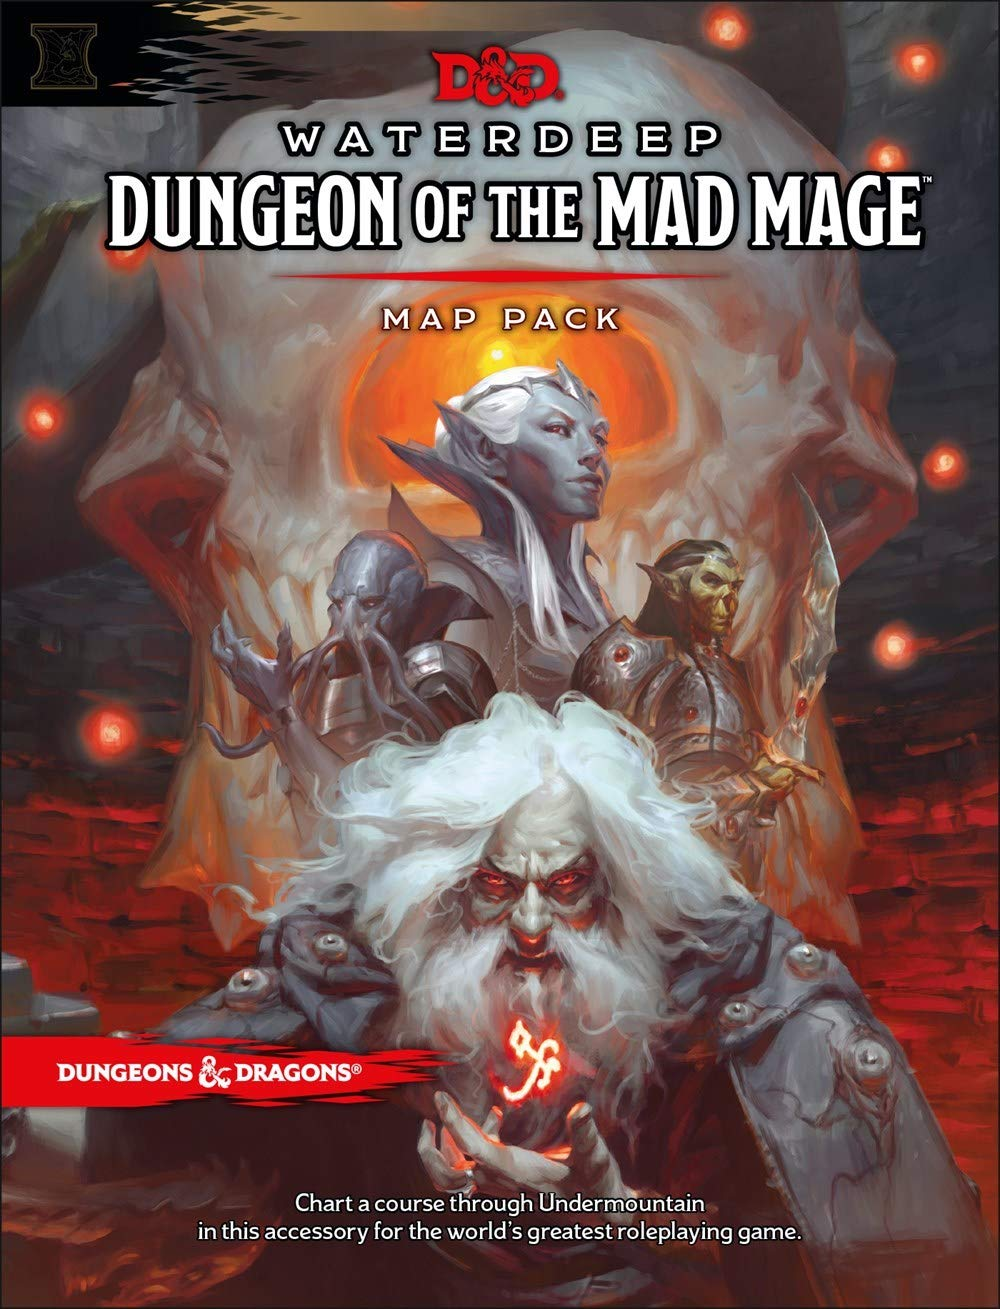 Dnd 5e Christmas Campaign 2020 Waterdeep Dungeons & Dragons Waterdeep: Dungeon of the Mad Mage Maps and